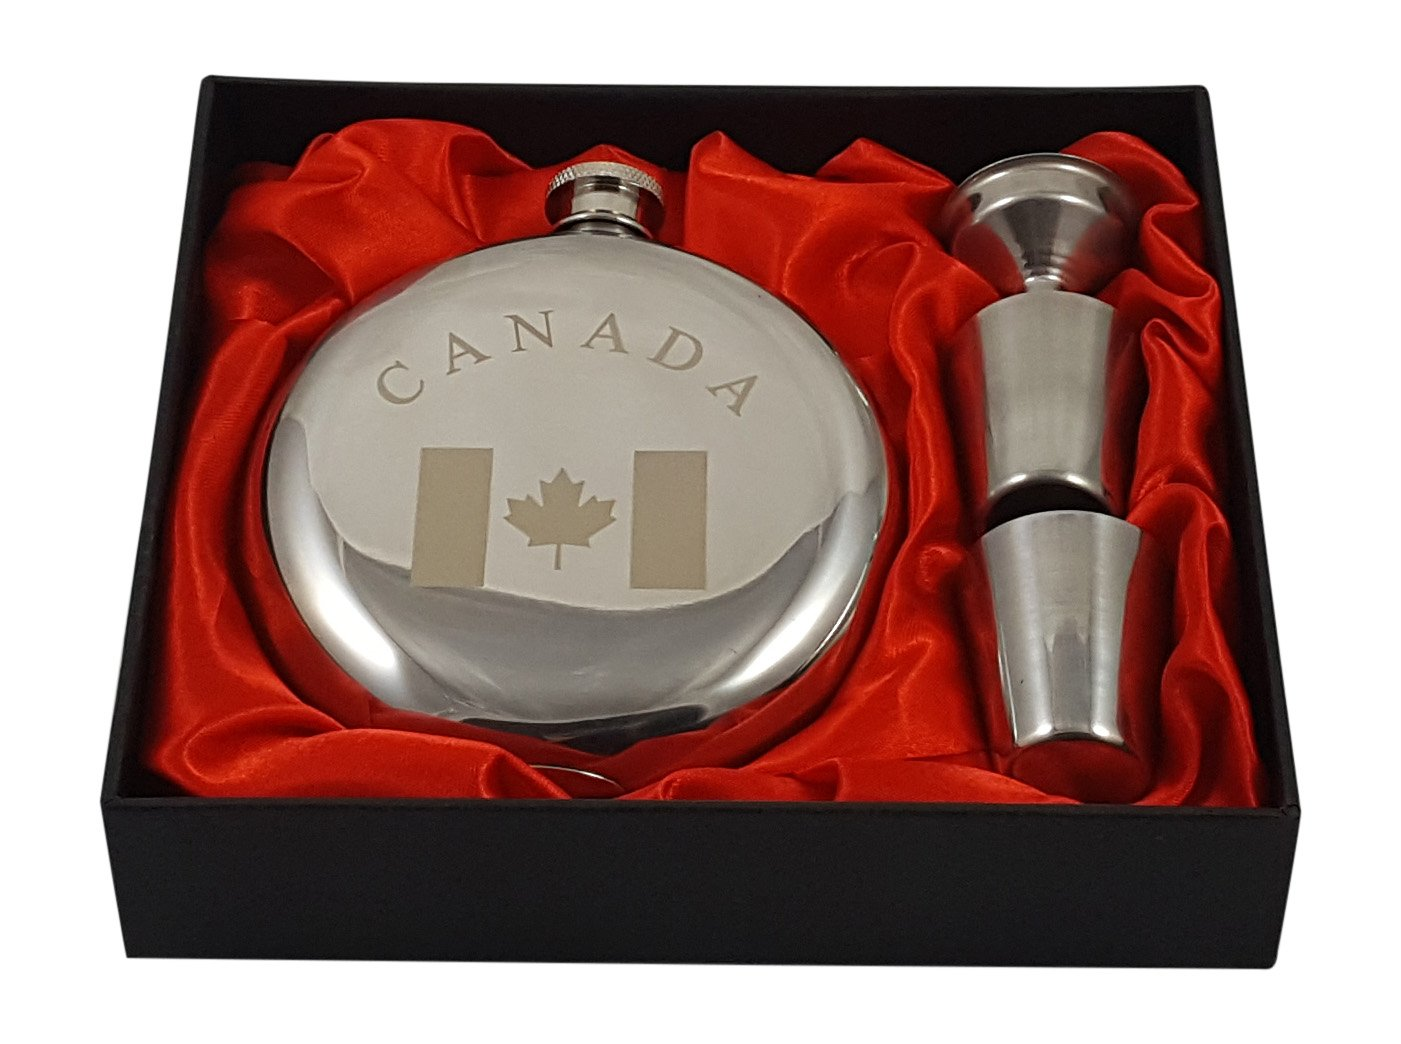 Canada Flask Gift Set by Palm City Products (Image #1)